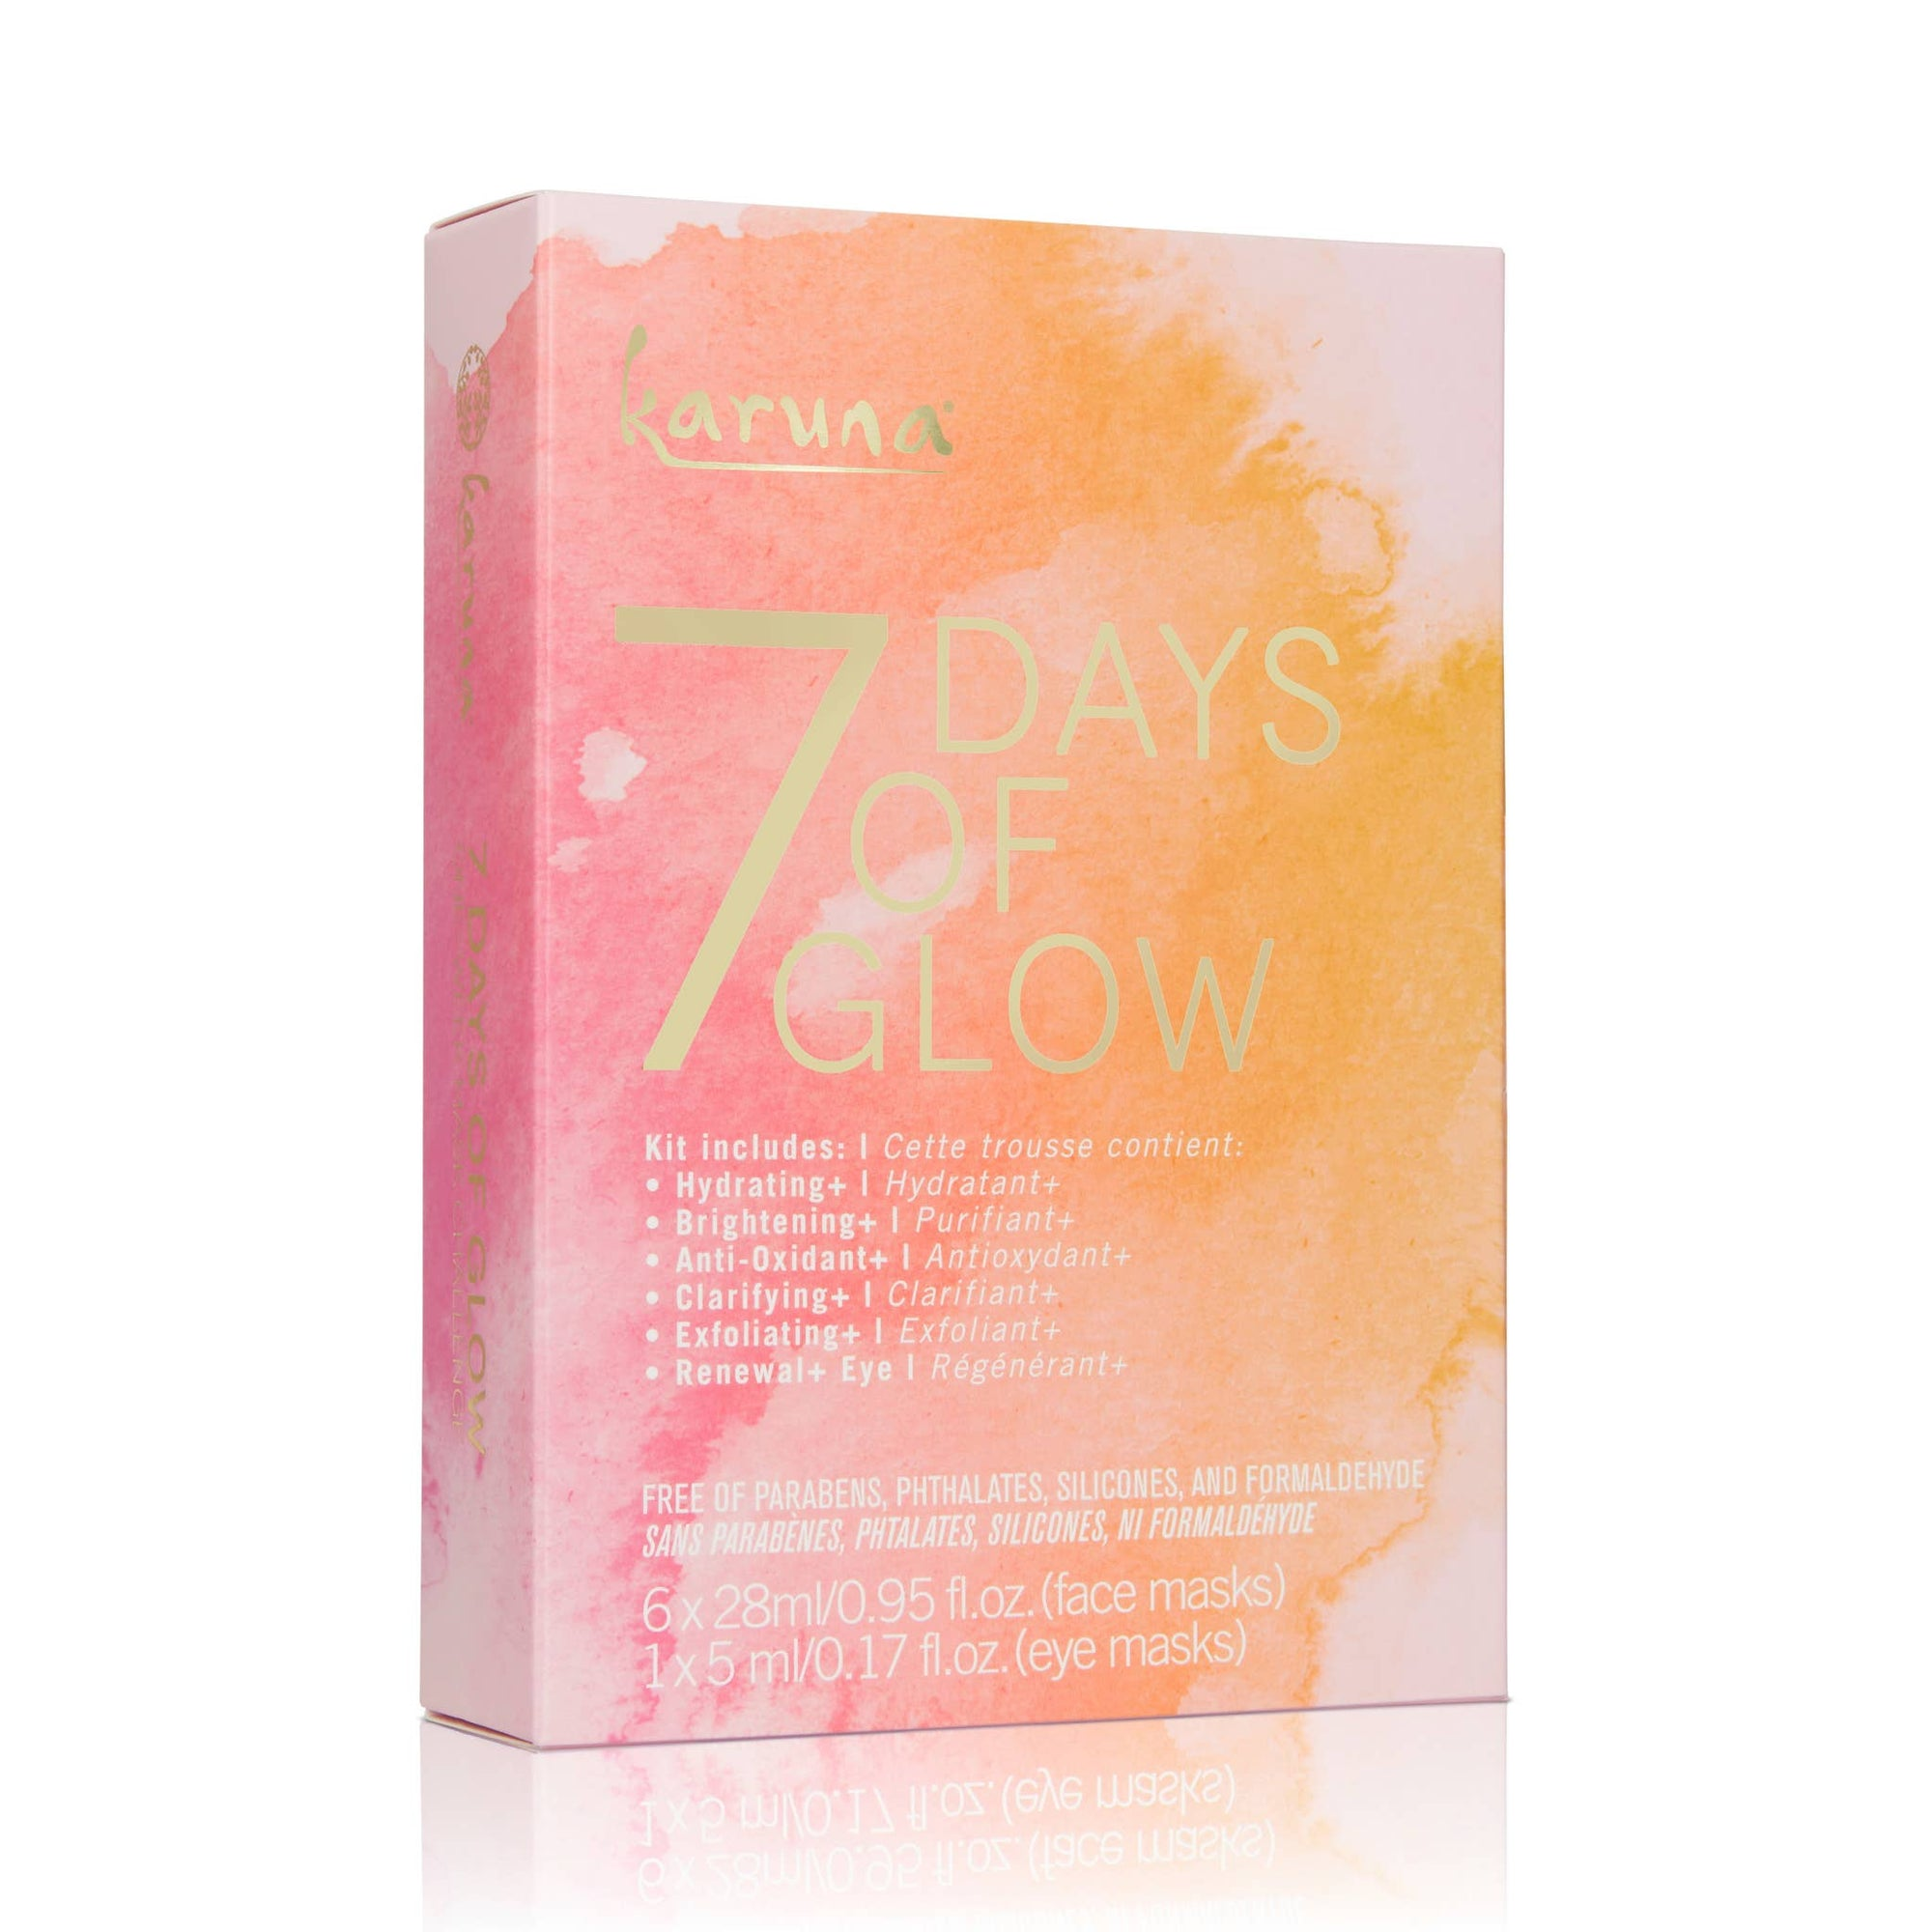 7 Days of Glow Face and Eye Mask set